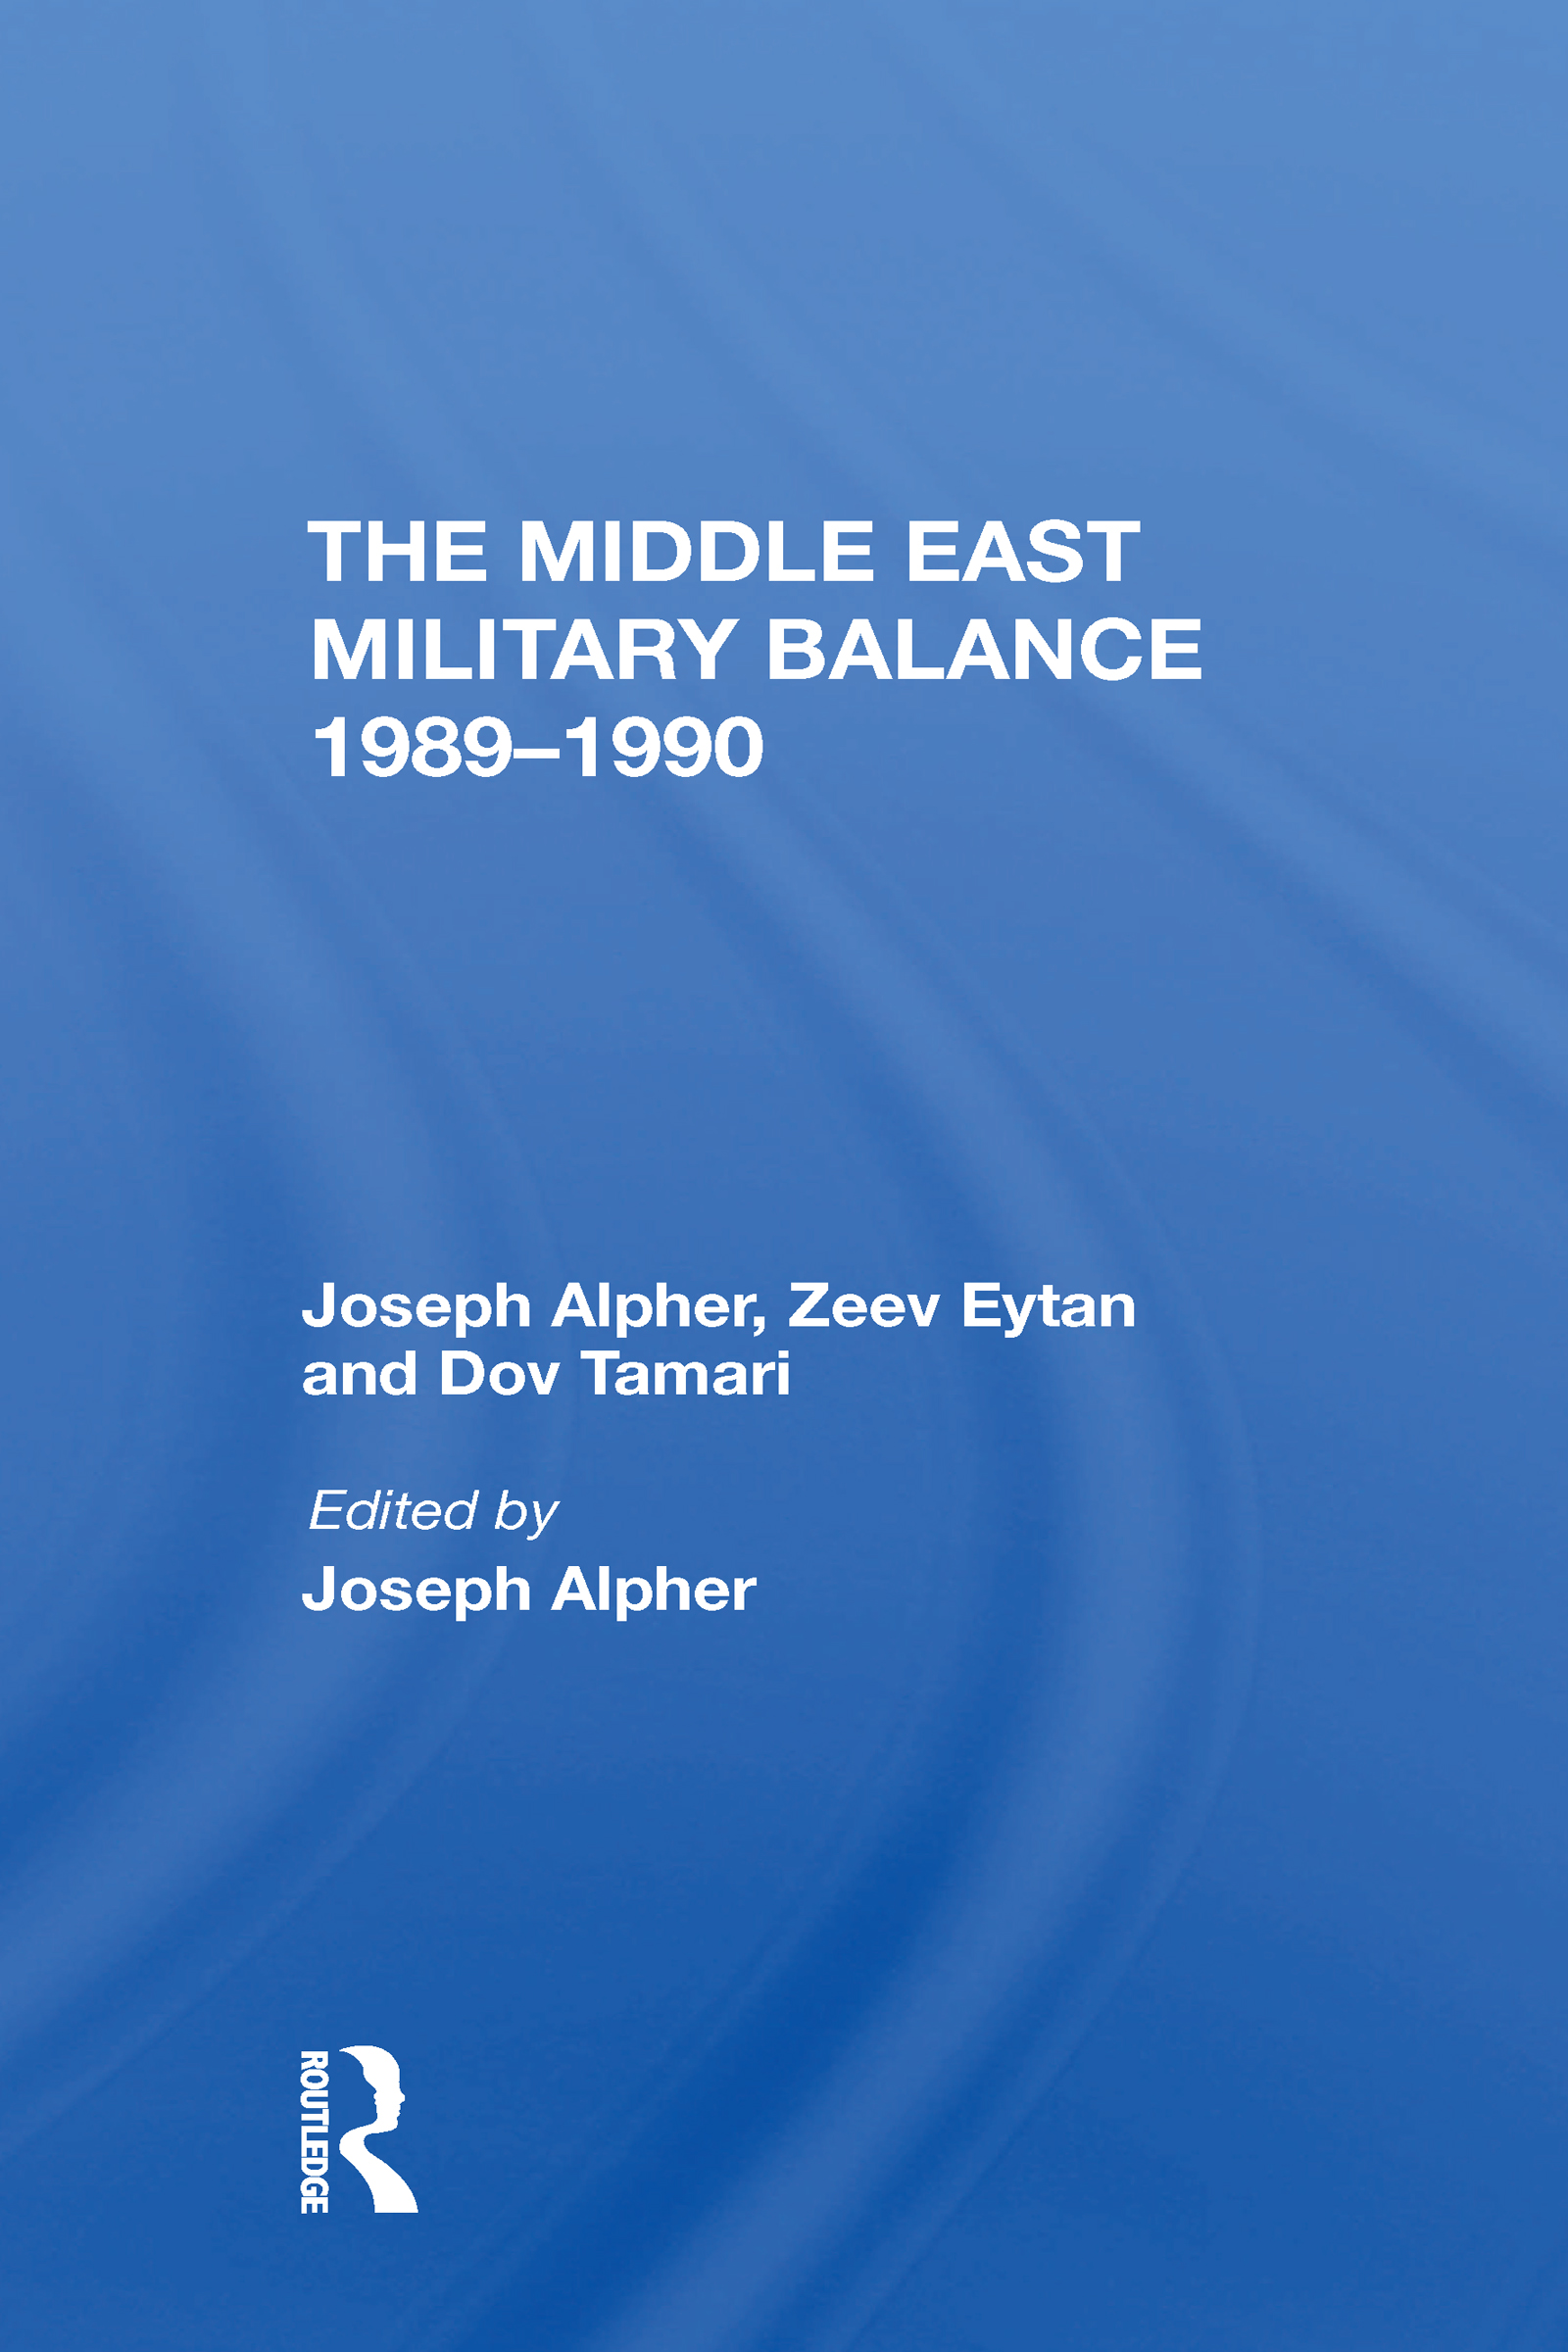 The Middle East Military Balance 1989-1990